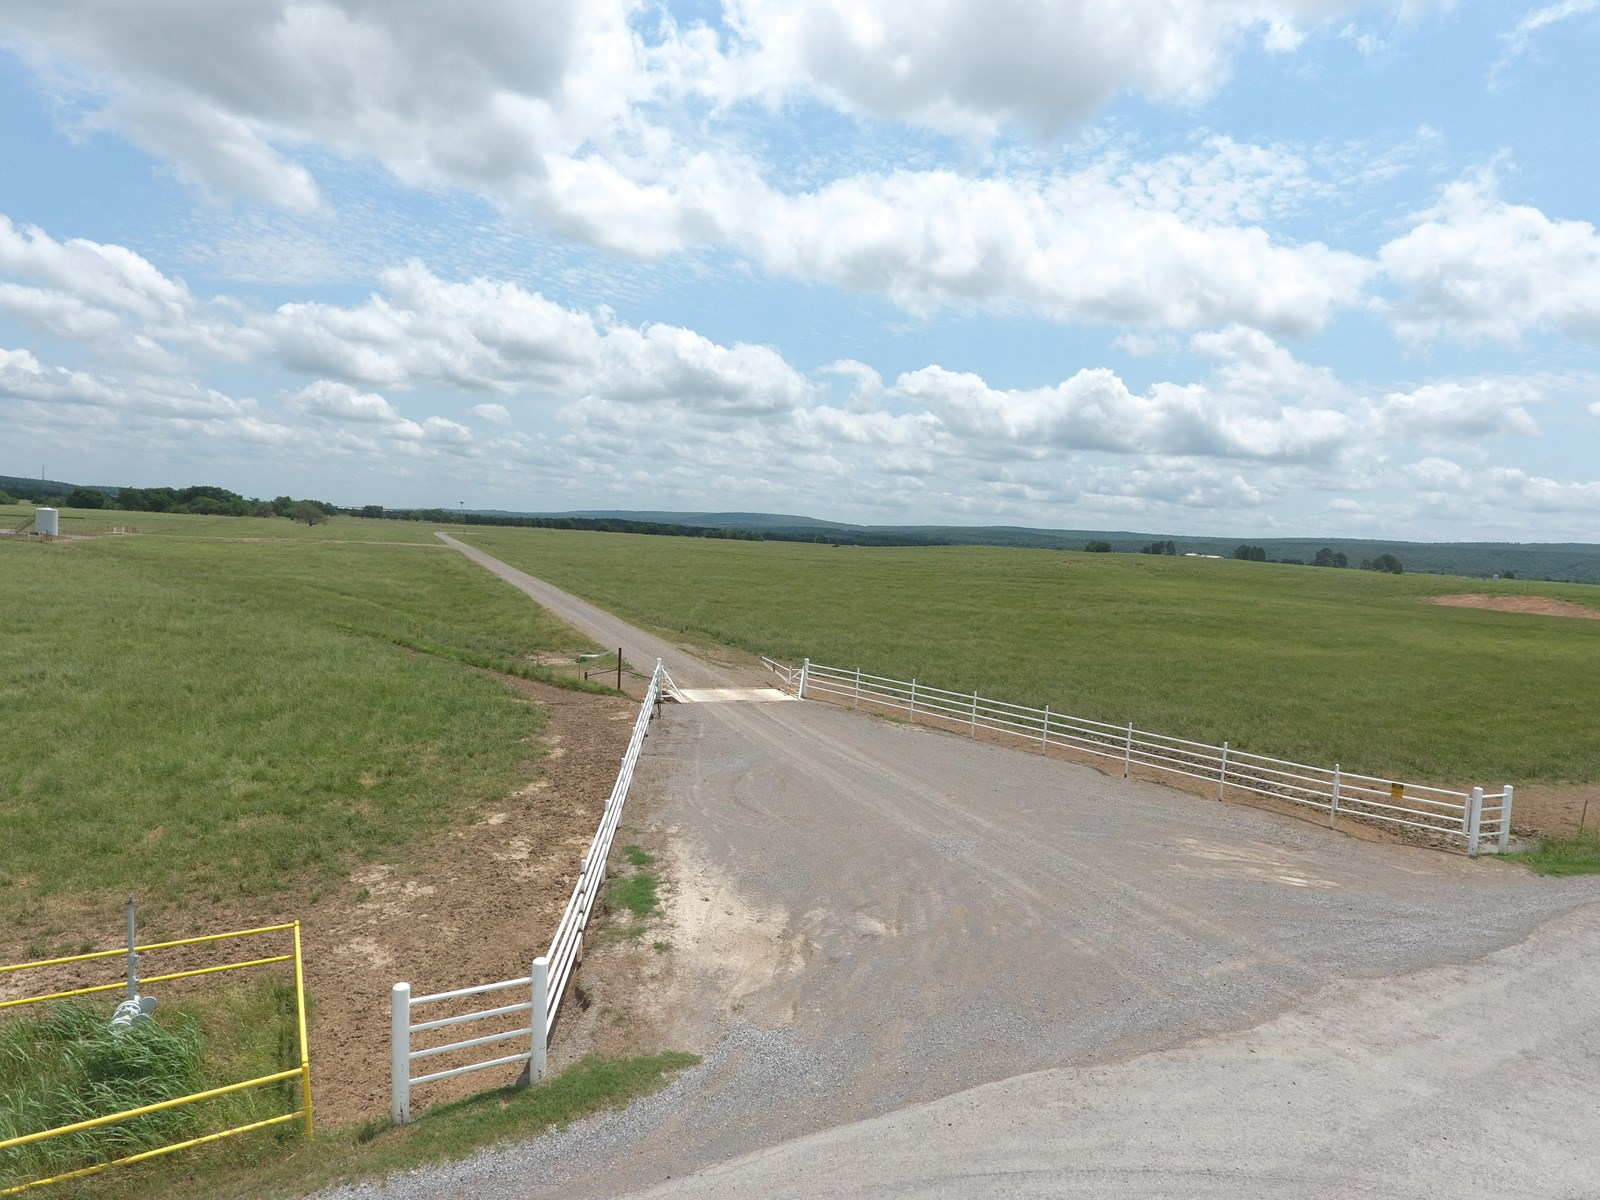 Land For sale- Southeast Oklahoma- Wilburton, OK